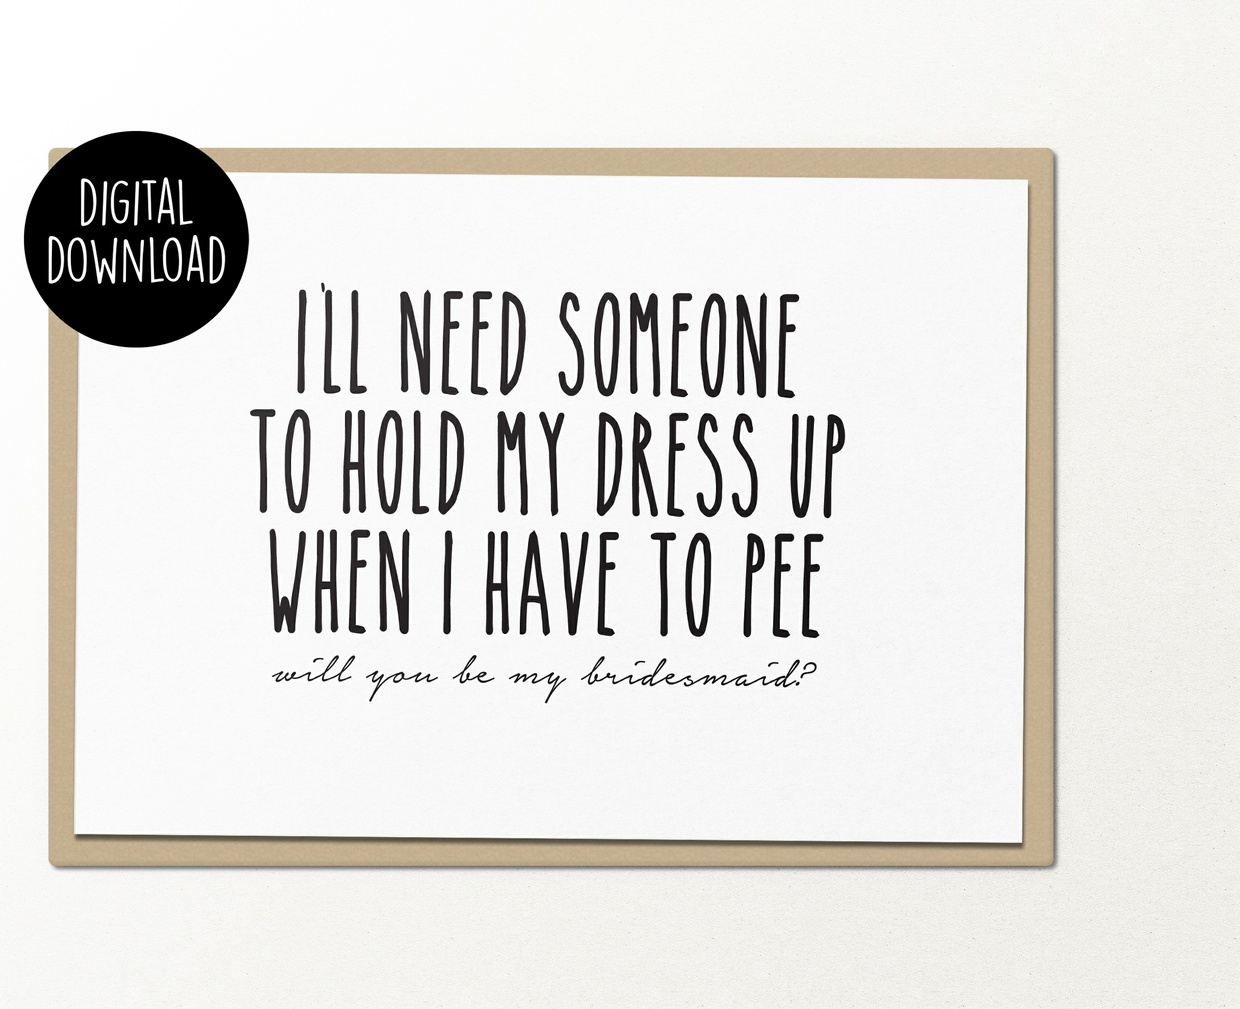 Need someone to hold my dress up when i have to pee bridesmaid printable greeting card